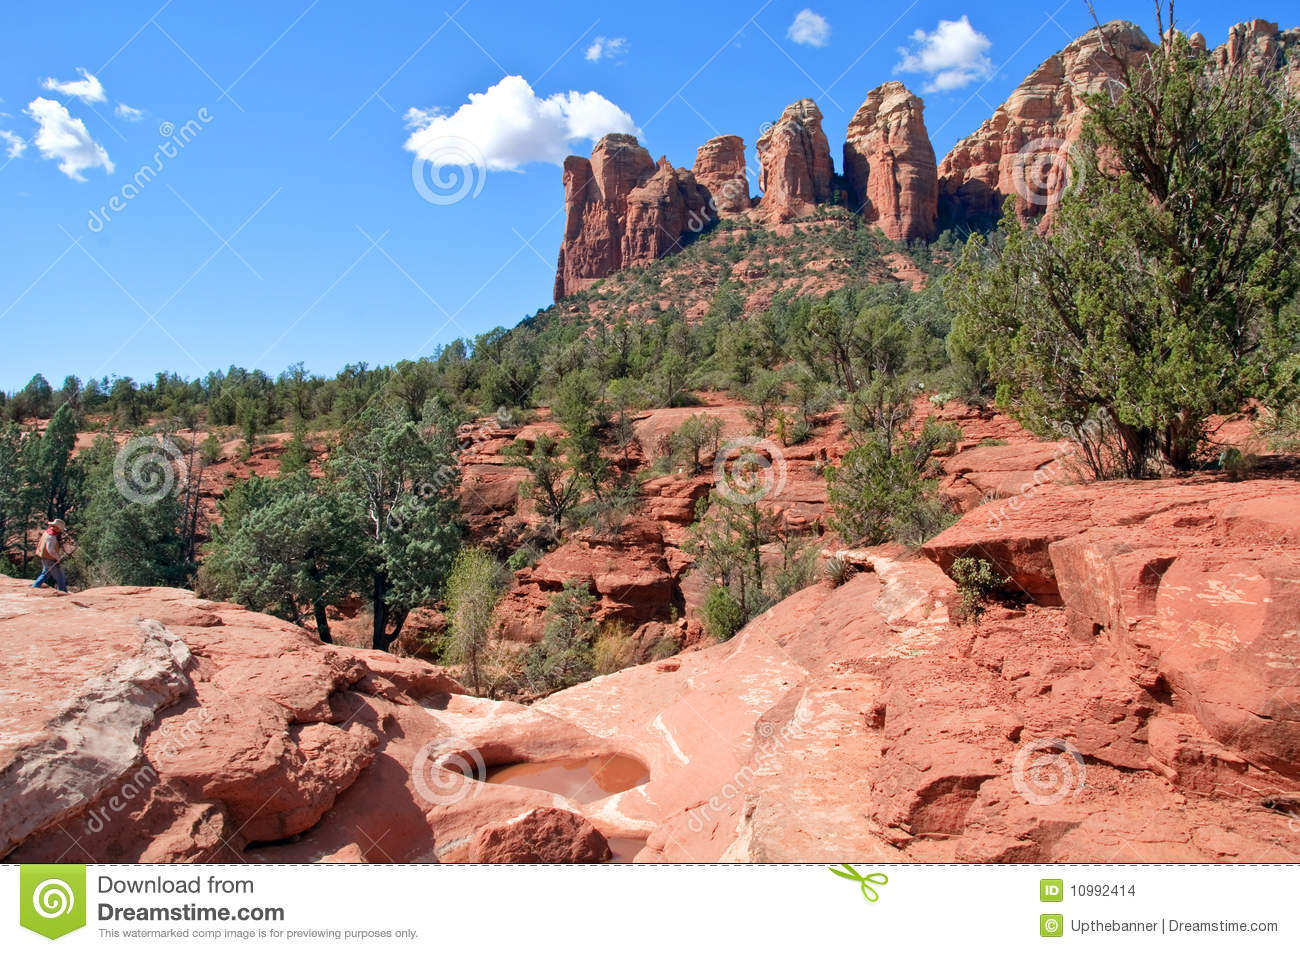 Scenic red stone landscape of sedona in arizona stock for Red stone landscape rock